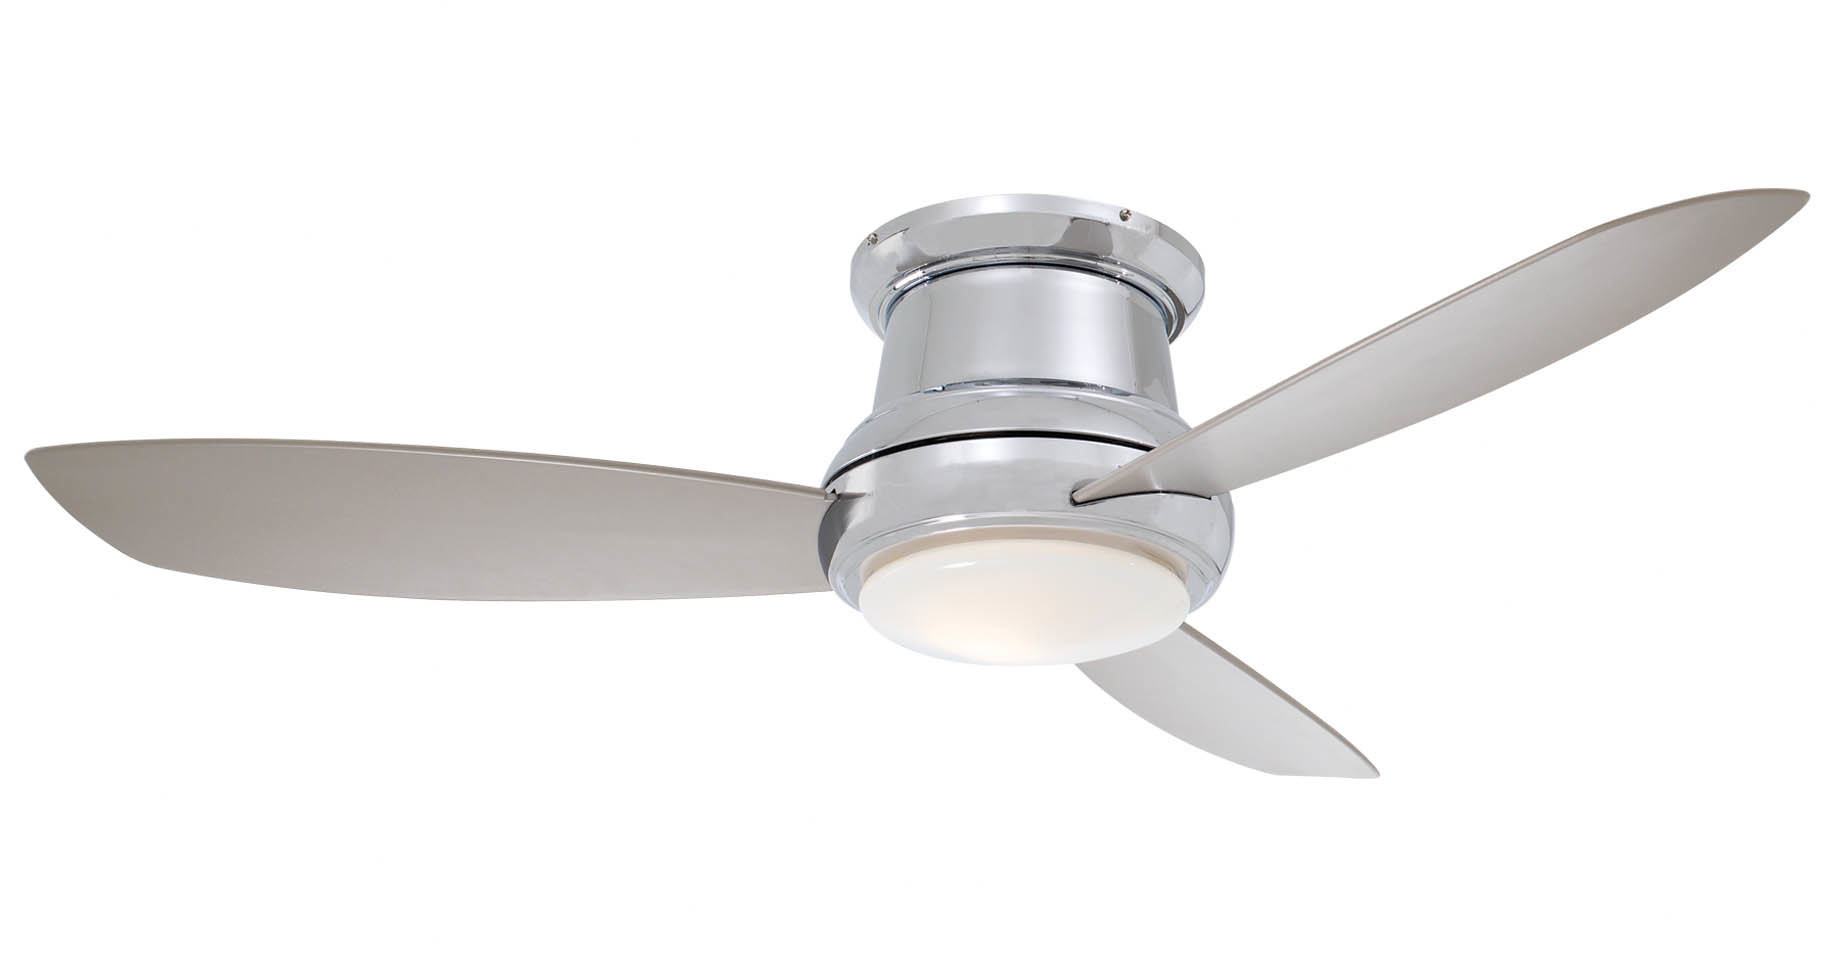 "2019 44"" Concept Ii 3 Blade Led Ceiling Fan With Regard To Cedarton 5 Blade Led Ceiling Fans (View 1 of 20)"